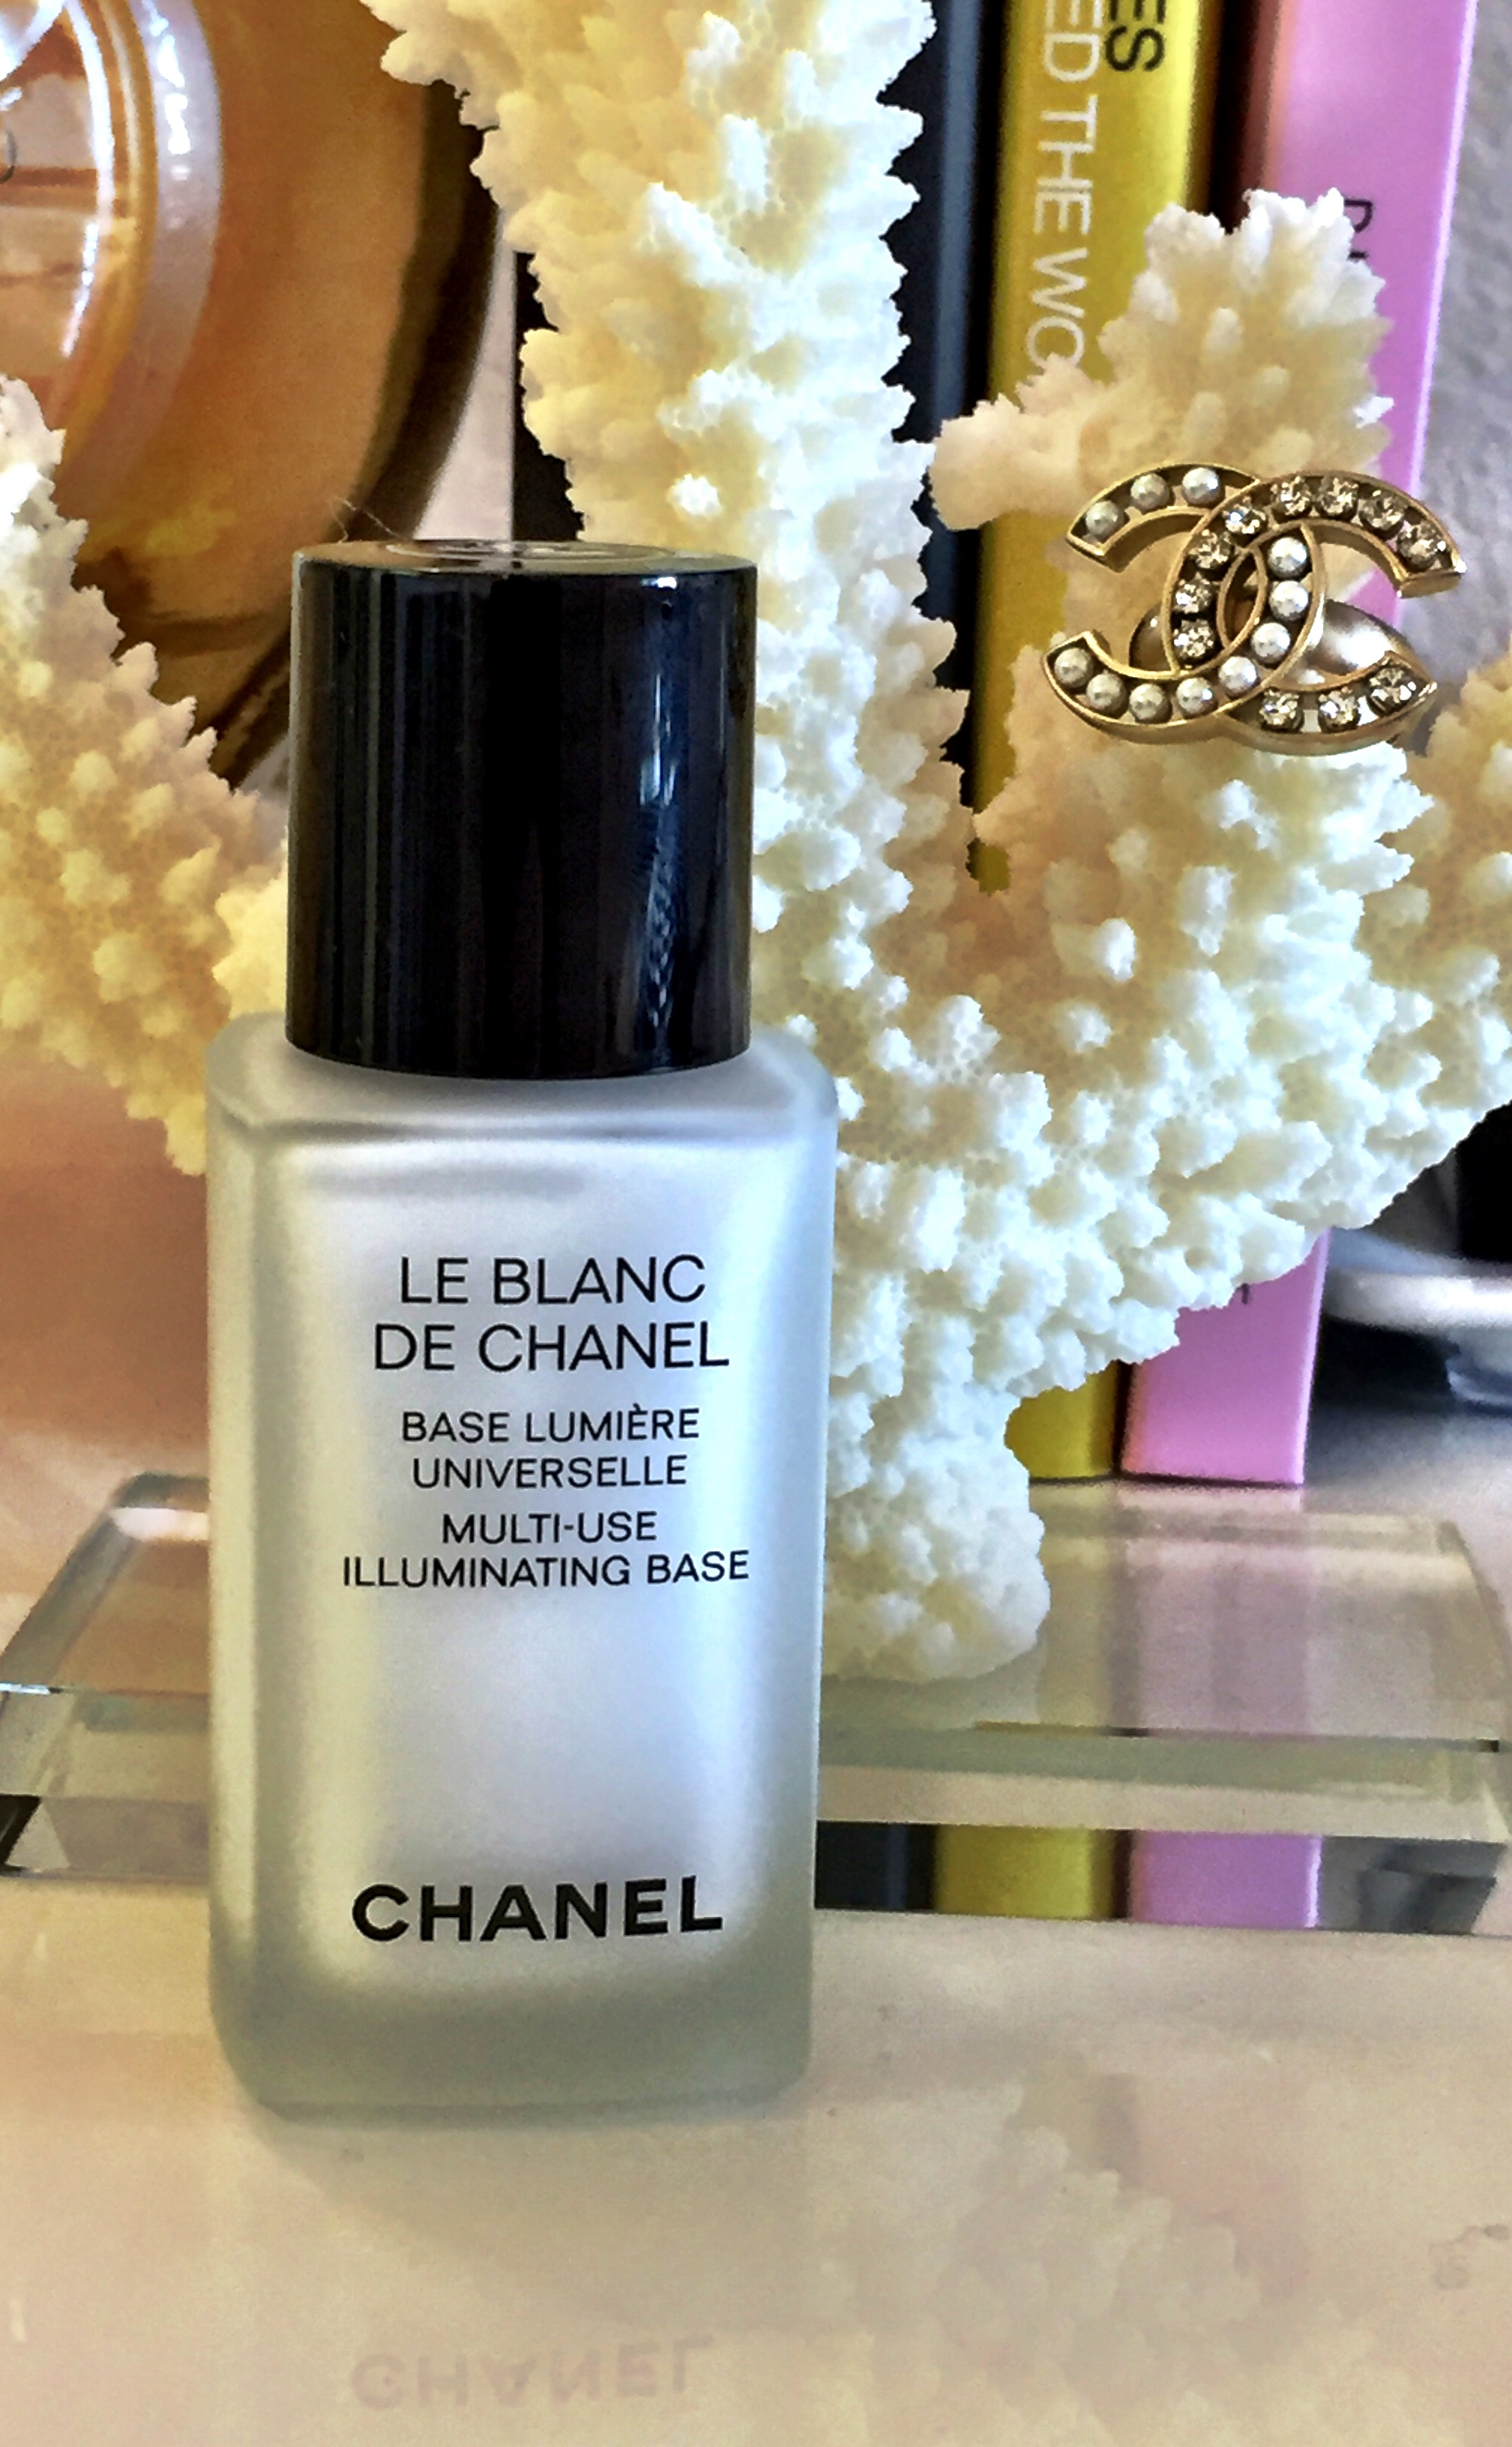 DE CHANEL Illuminating base